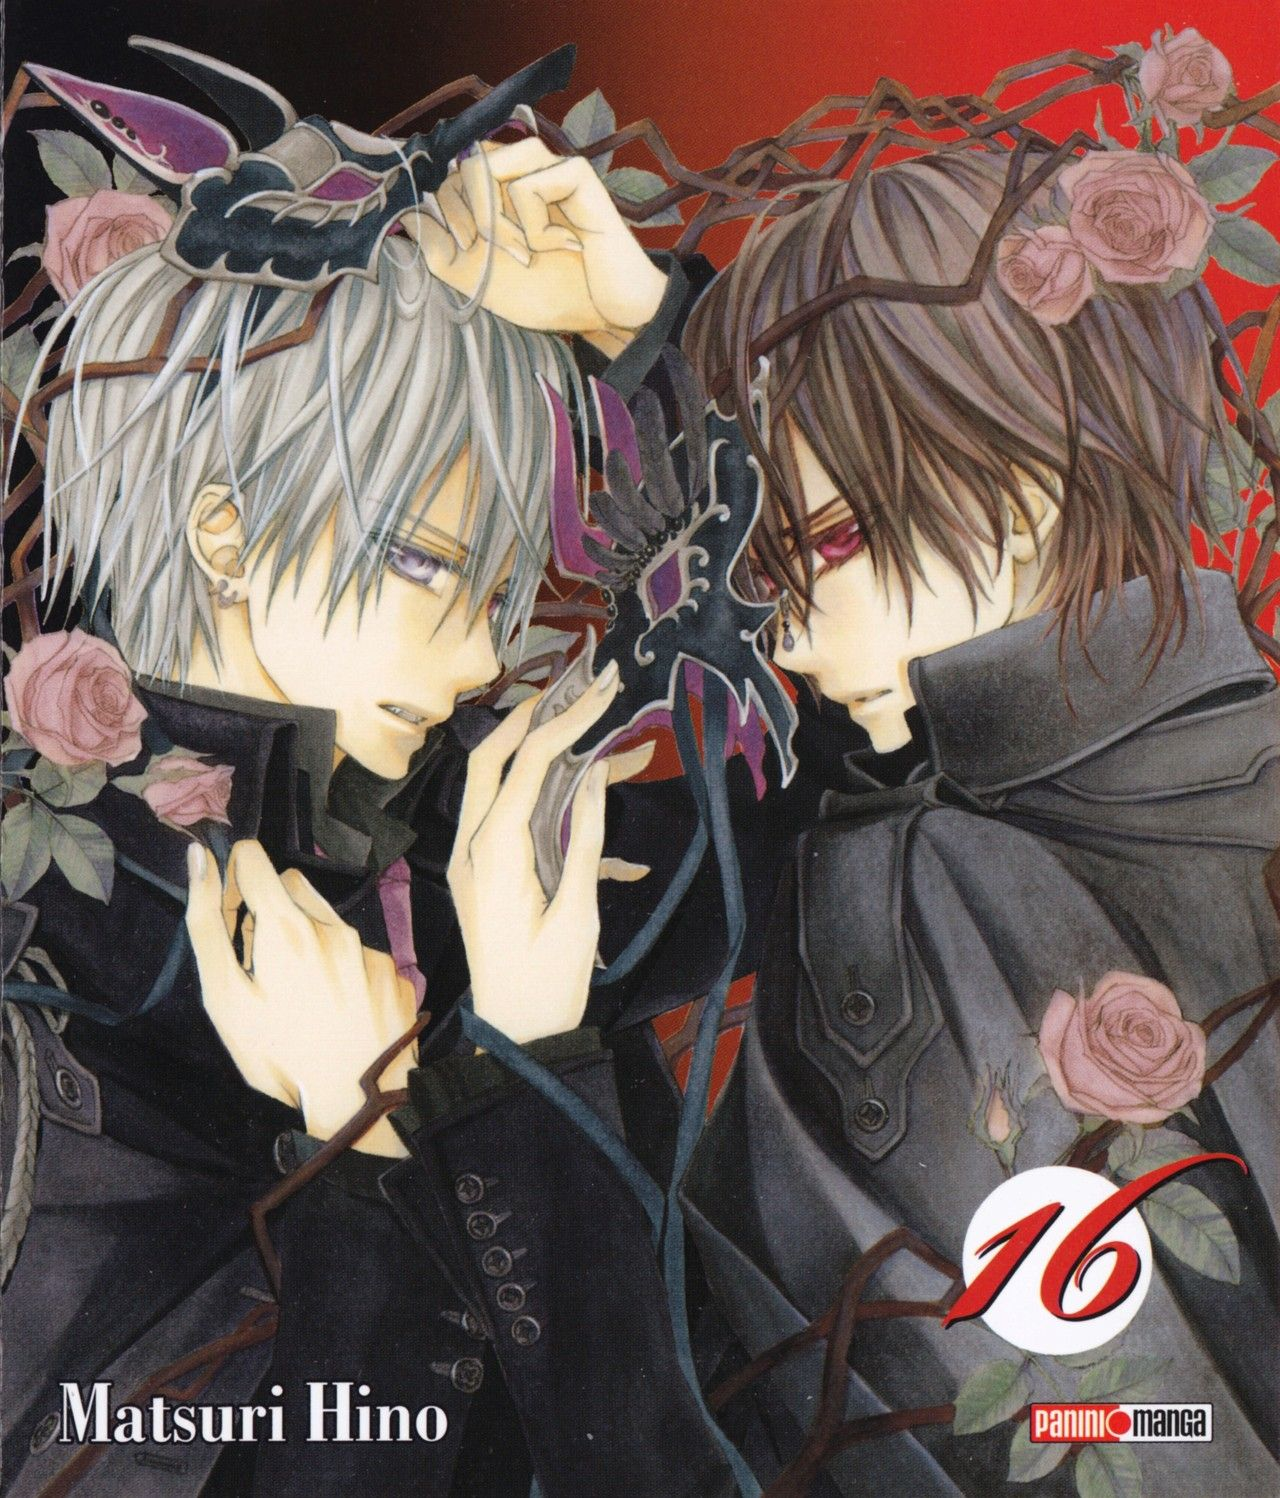 Zero and Kaname on Vol.16 cover Vampire knight manga